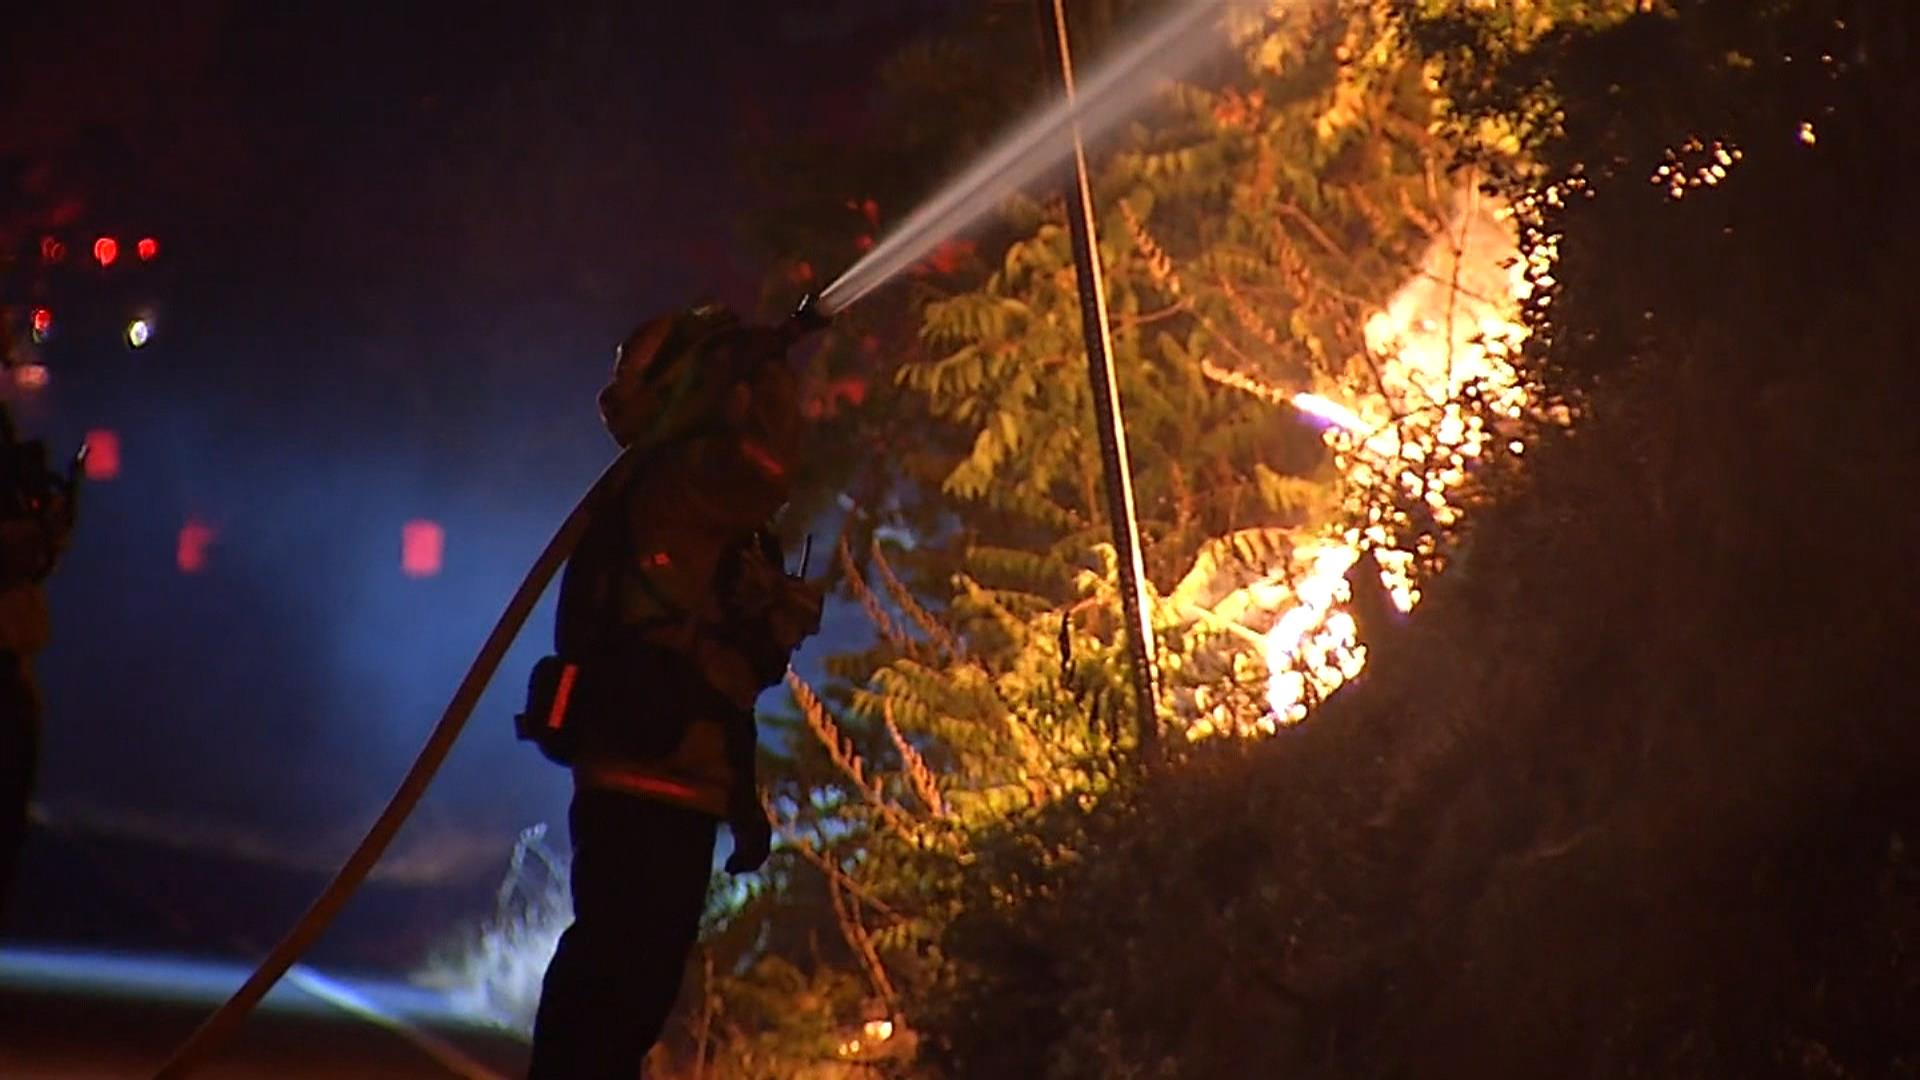 Blue Cut Fire 22 percent contained; some evacuations lifted